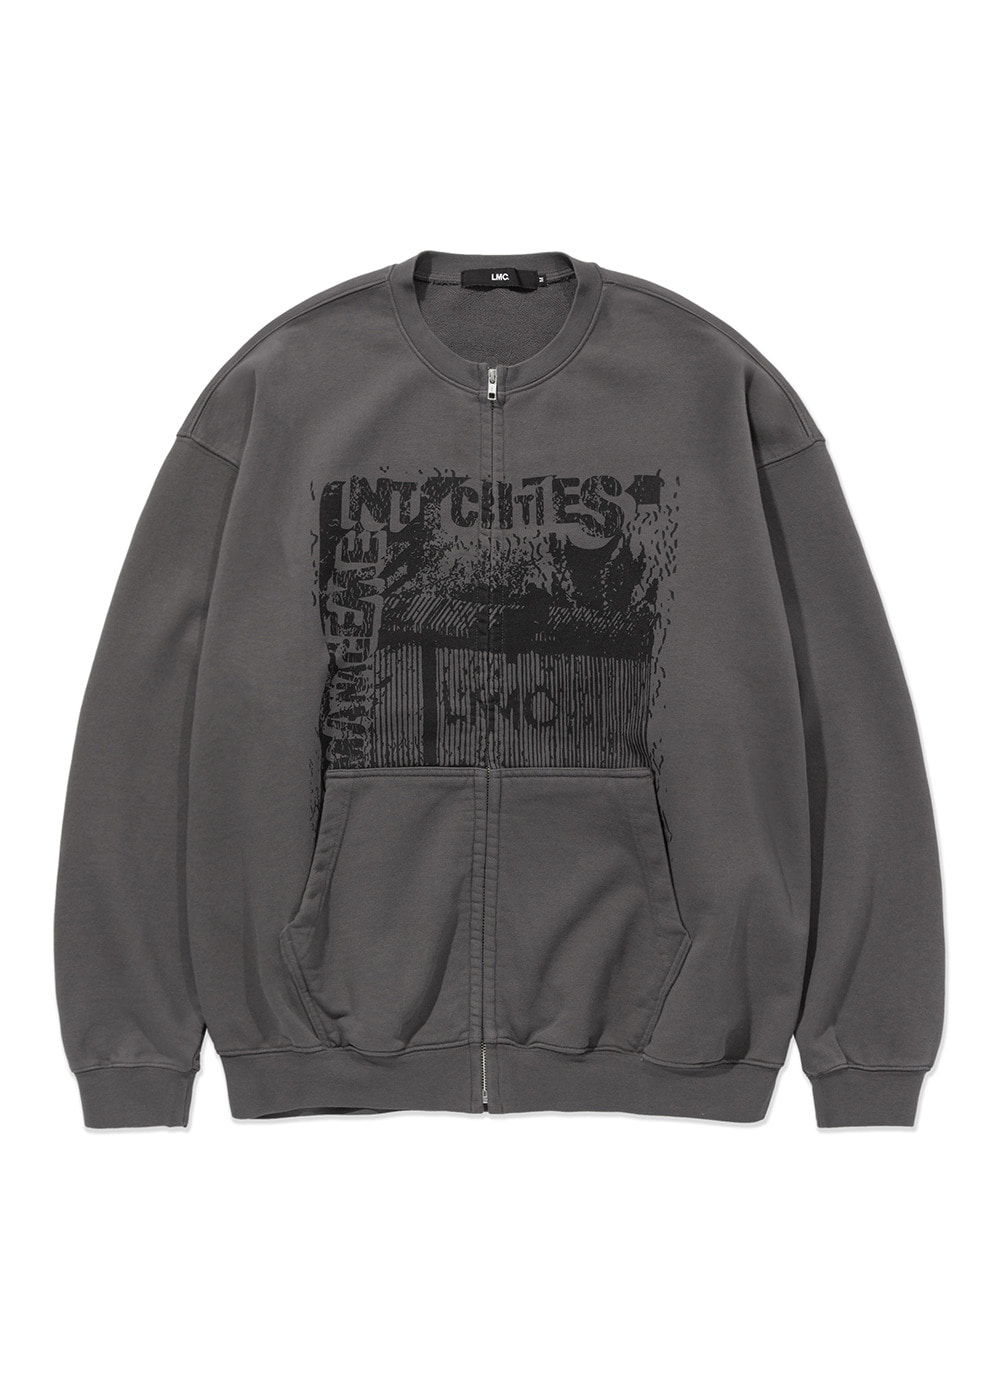 LMC BORDER OVERSIZED ZIP-UP SWEATSHIRT charcoal